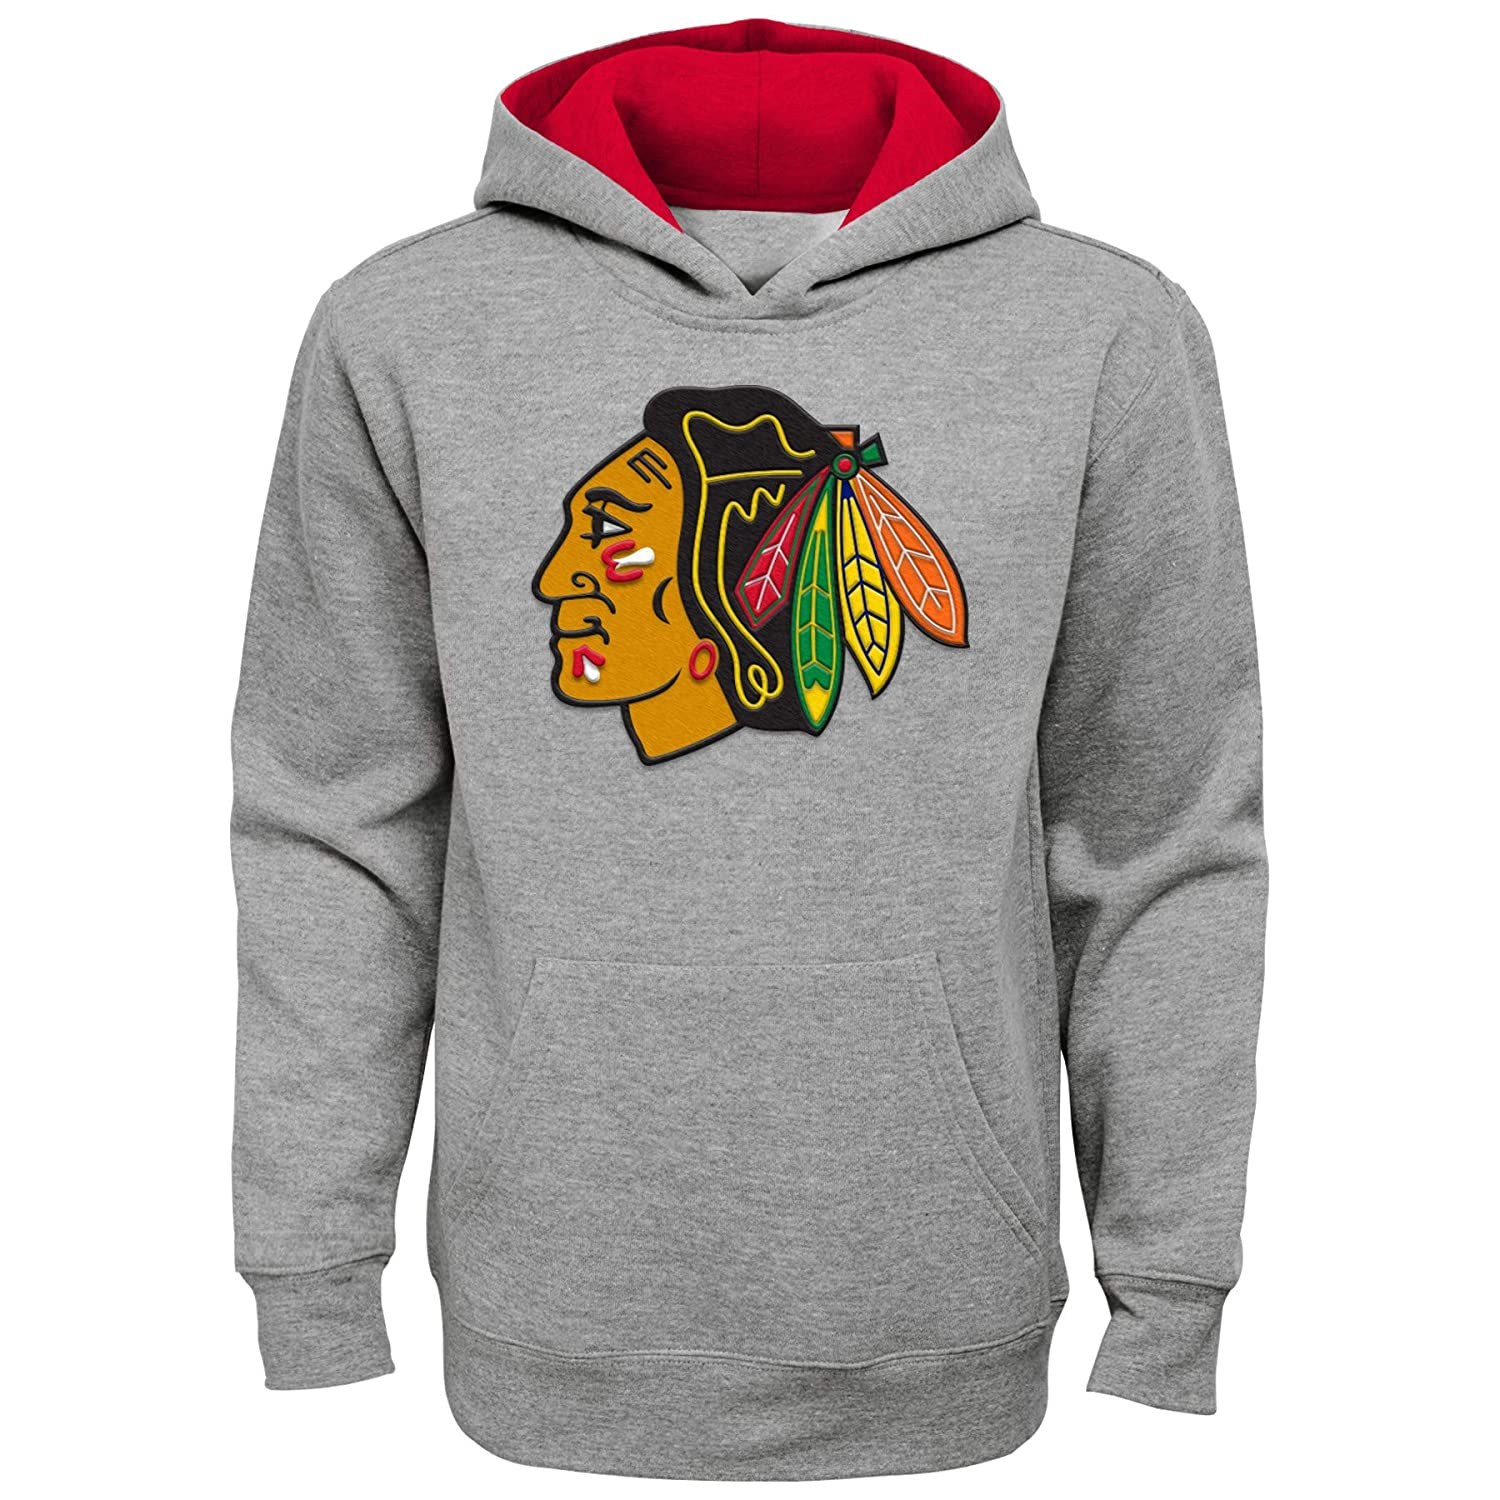 Chicago Blackhawks Youth All Grey Sweatshirt Outerstuff